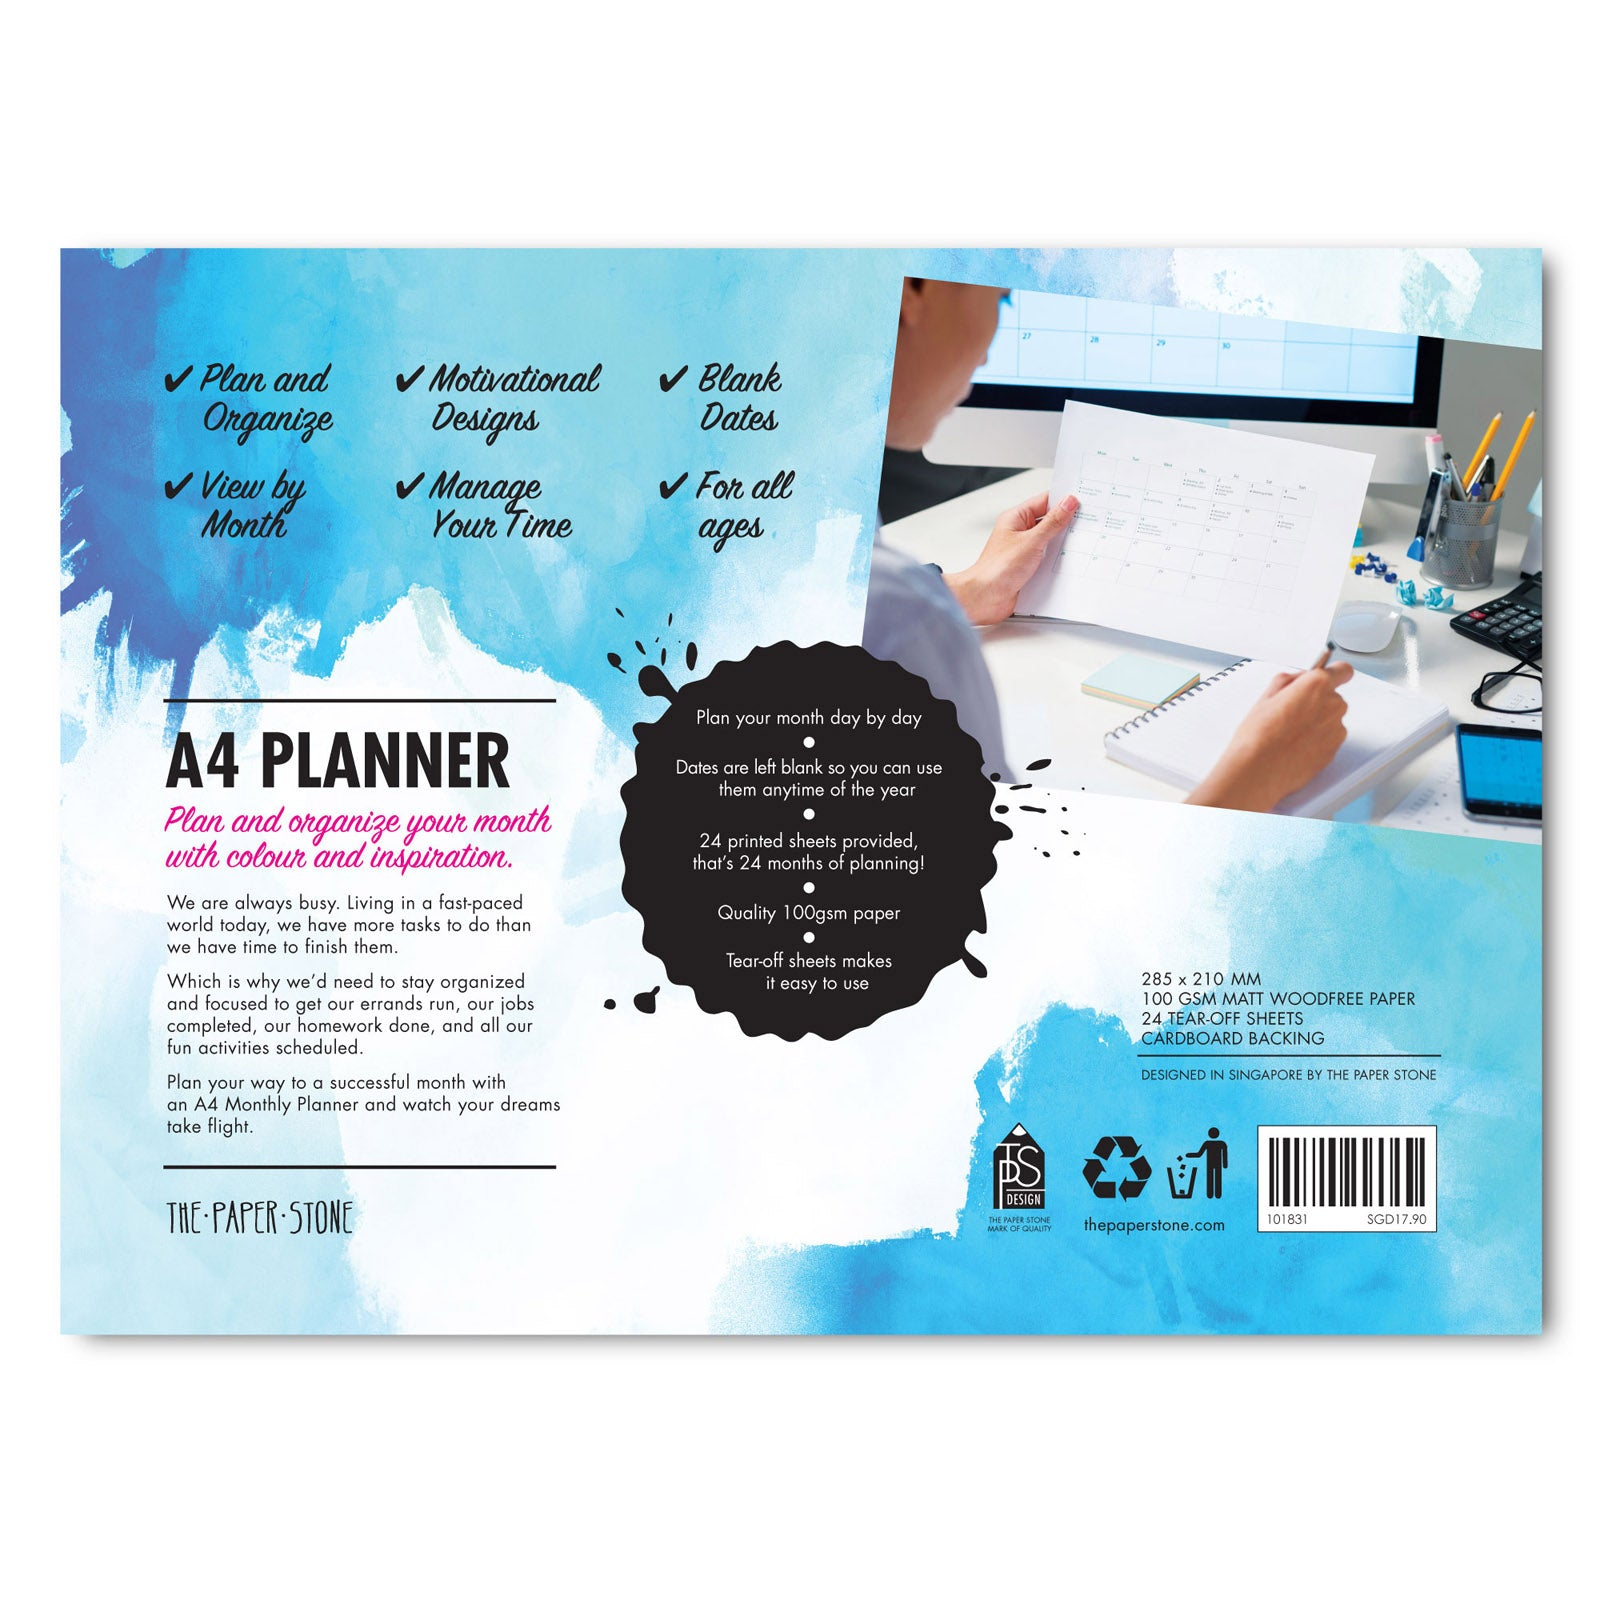 A4 Planner - Create Motivate Marble